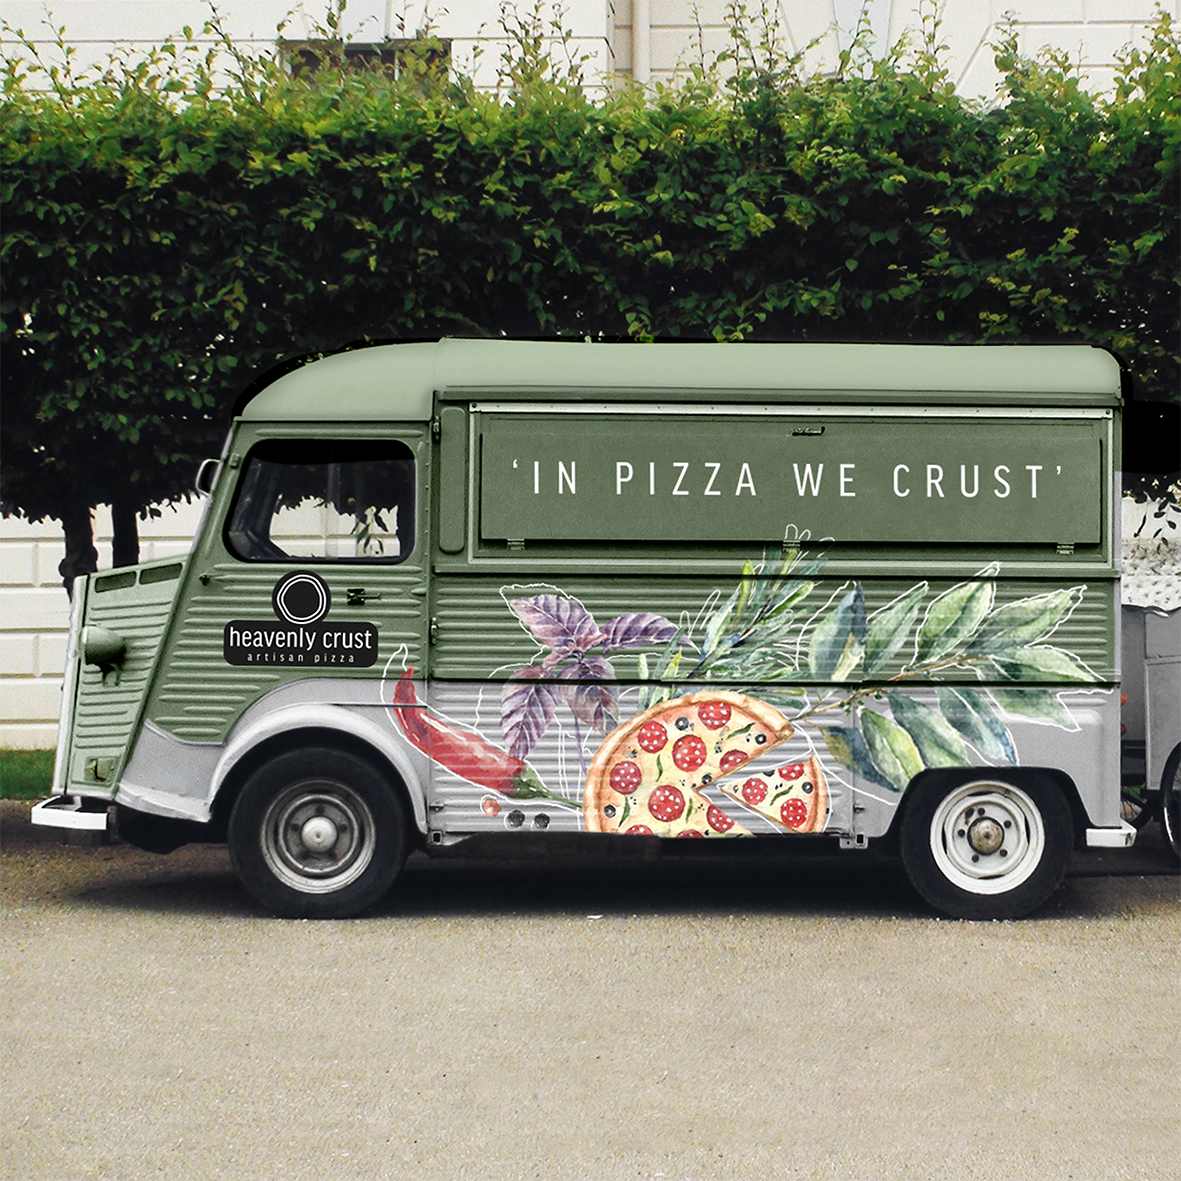 heavenly_crust_pizza_package_packaging_restaurant_identity_truck